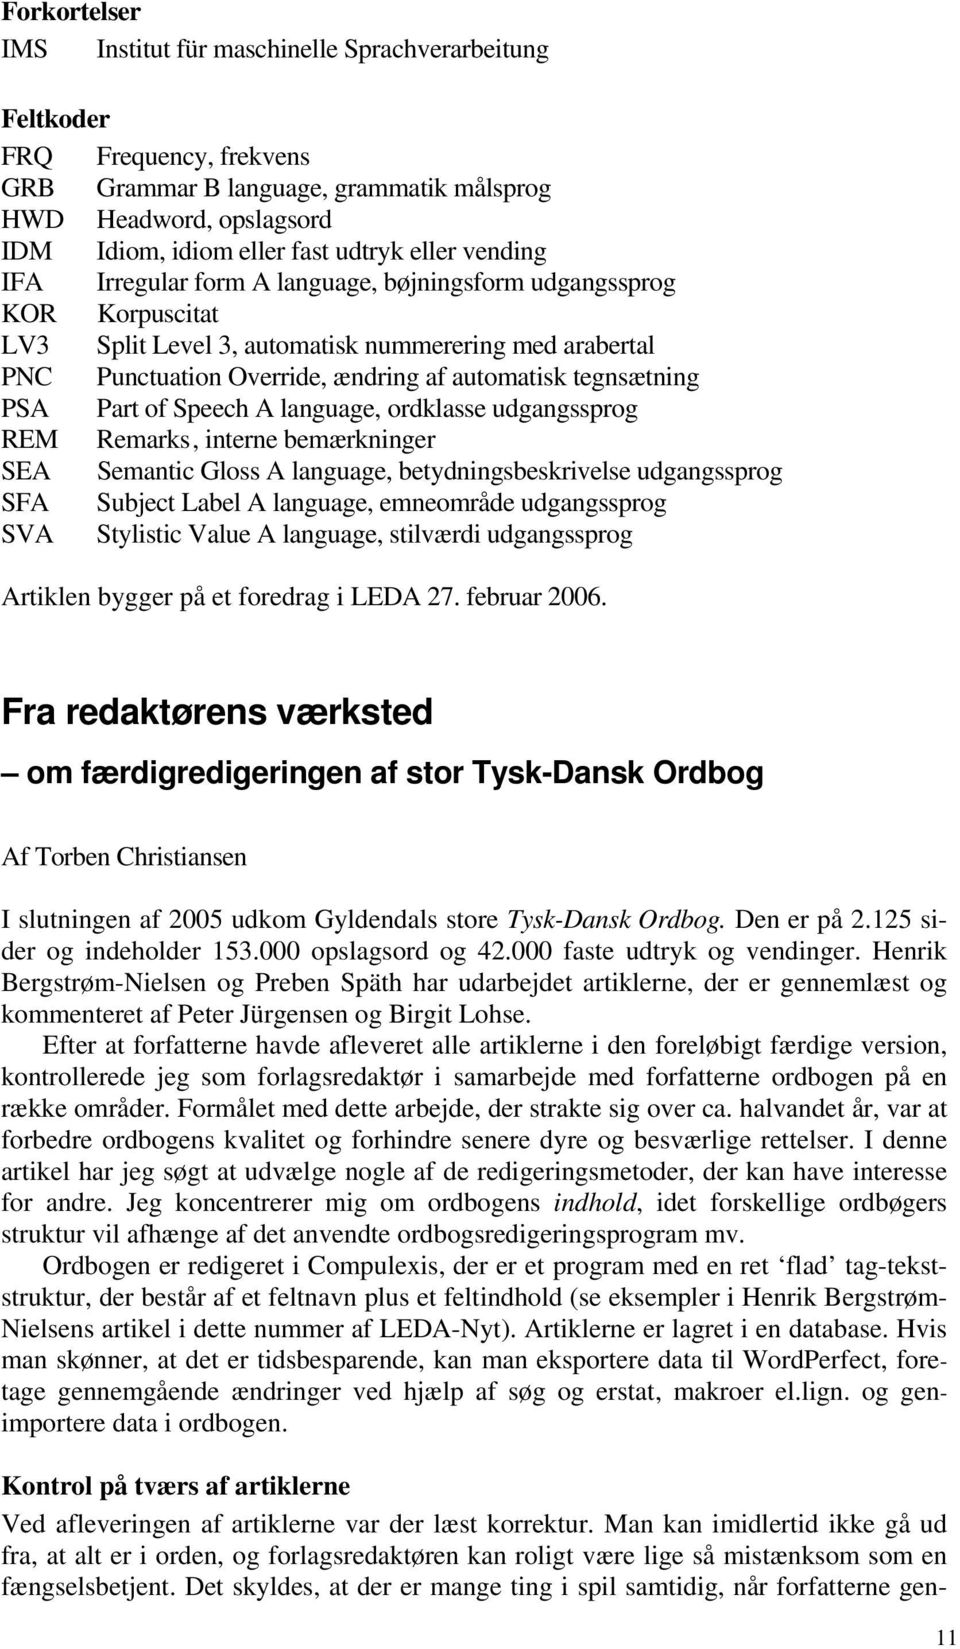 tegnsætning PSA Part of Speech A language, ordklasse udgangssprog REM Remarks, interne bemærkninger SEA Semantic Gloss A language, betydningsbeskrivelse udgangssprog SFA Subject Label A language,